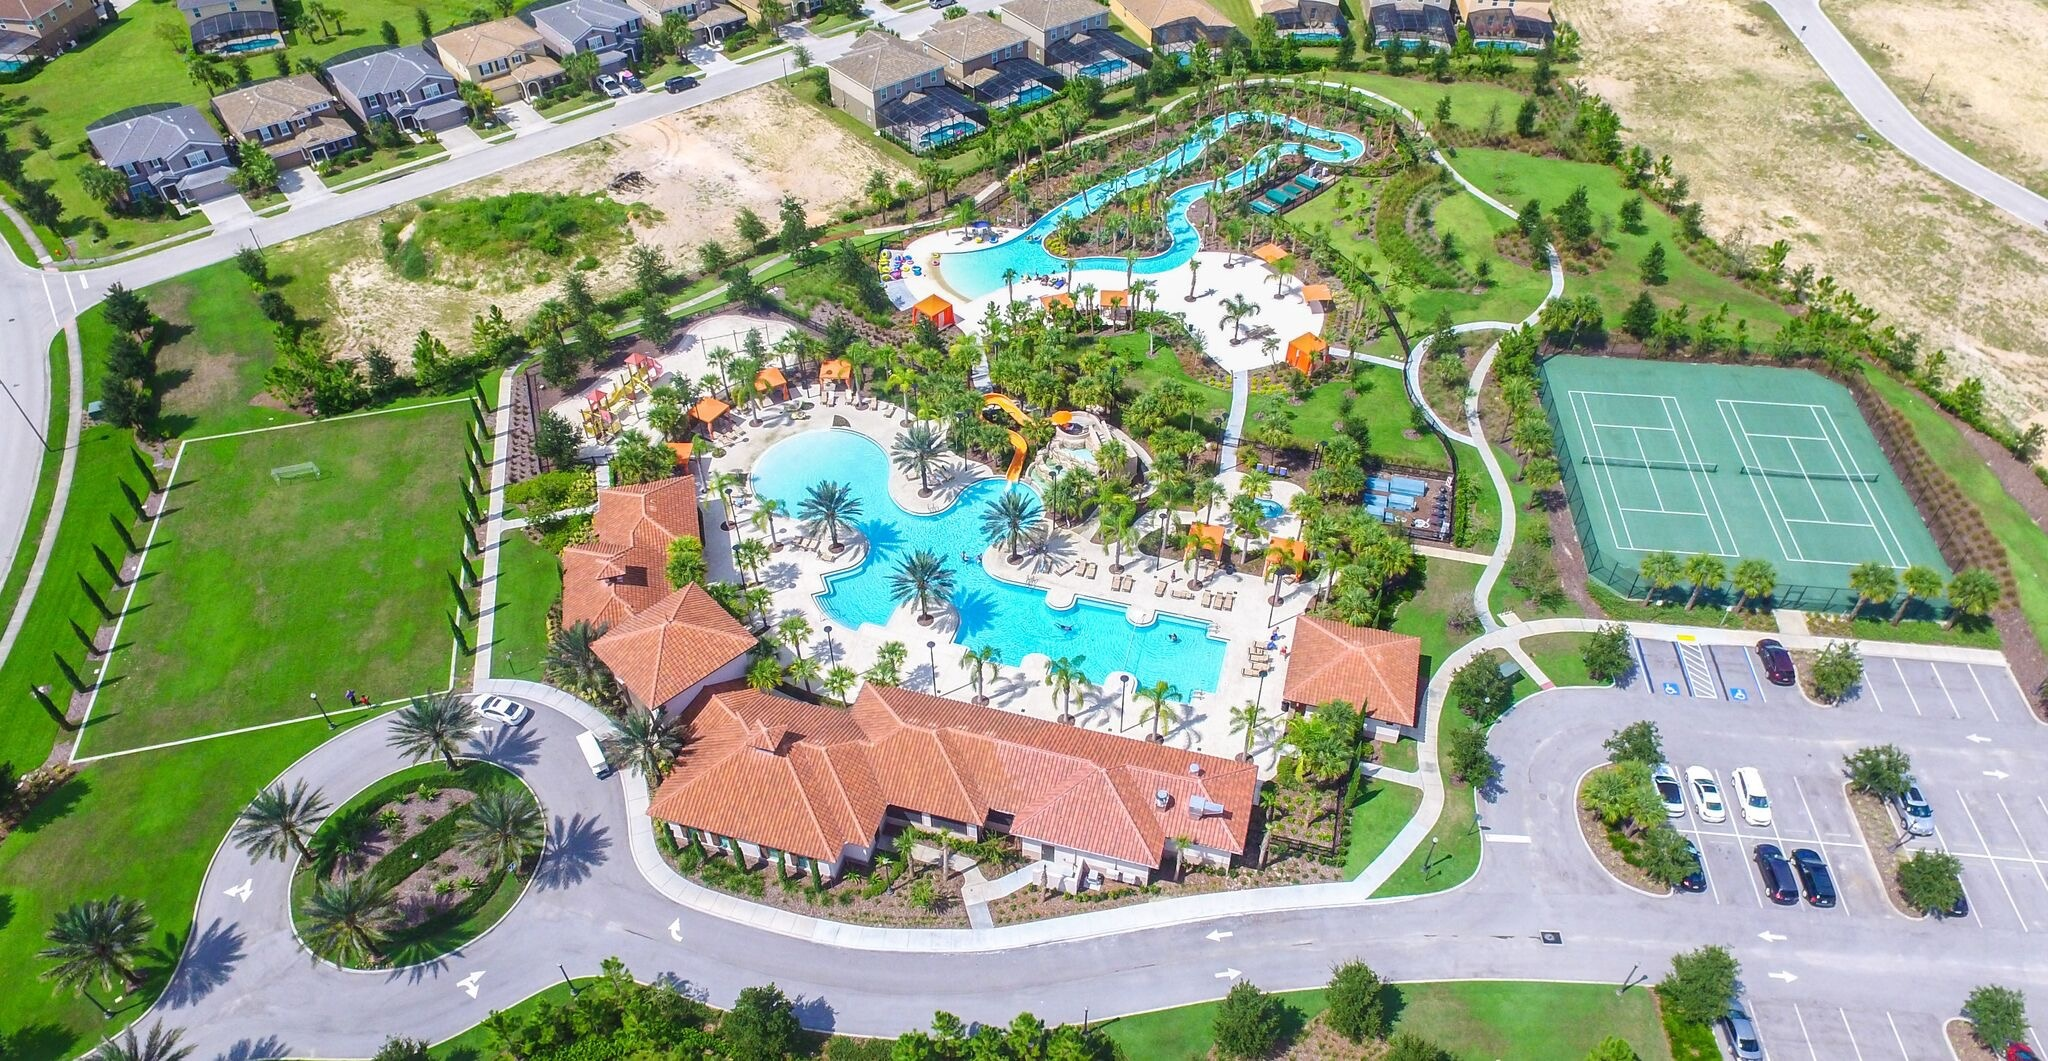 Orlando vacation resort homes for sale by Jared Weggeland and Focus Group Florida Keller Williams Realty